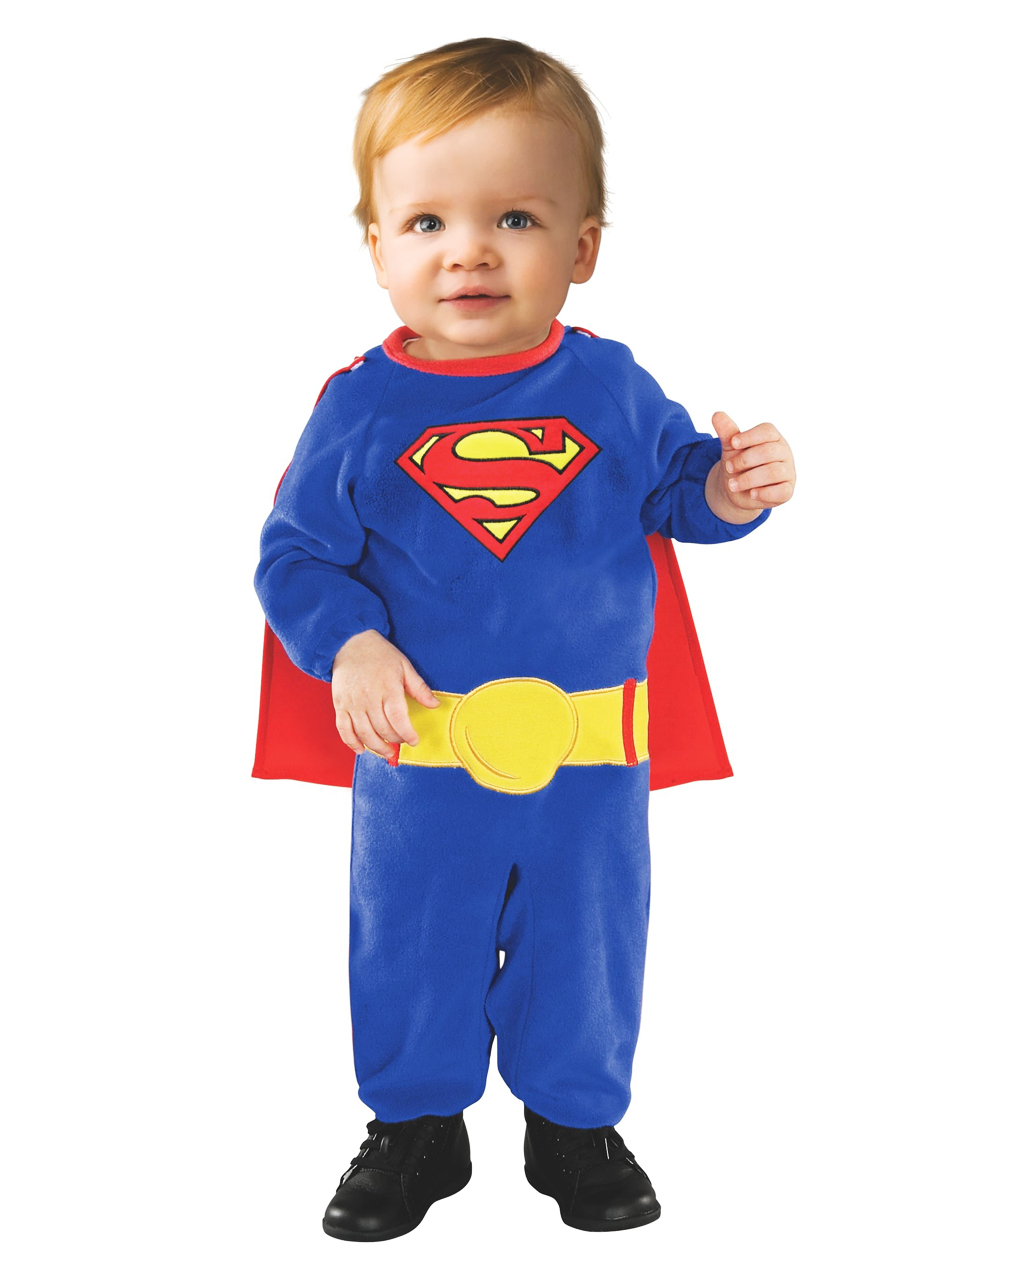 Superman Babykostum Superhelden Lizenzkostume Fur Kinder